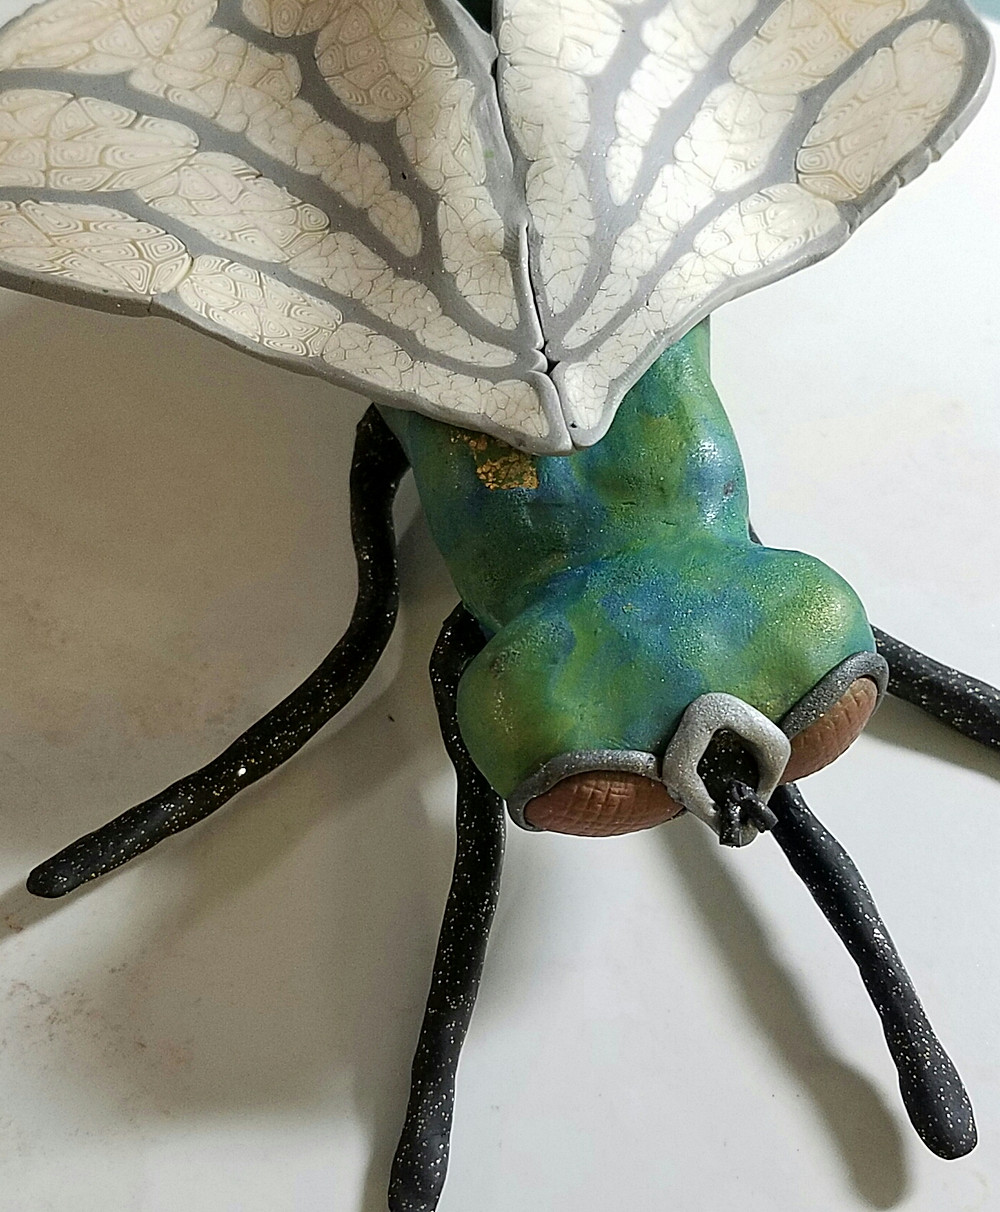 green fly with wings